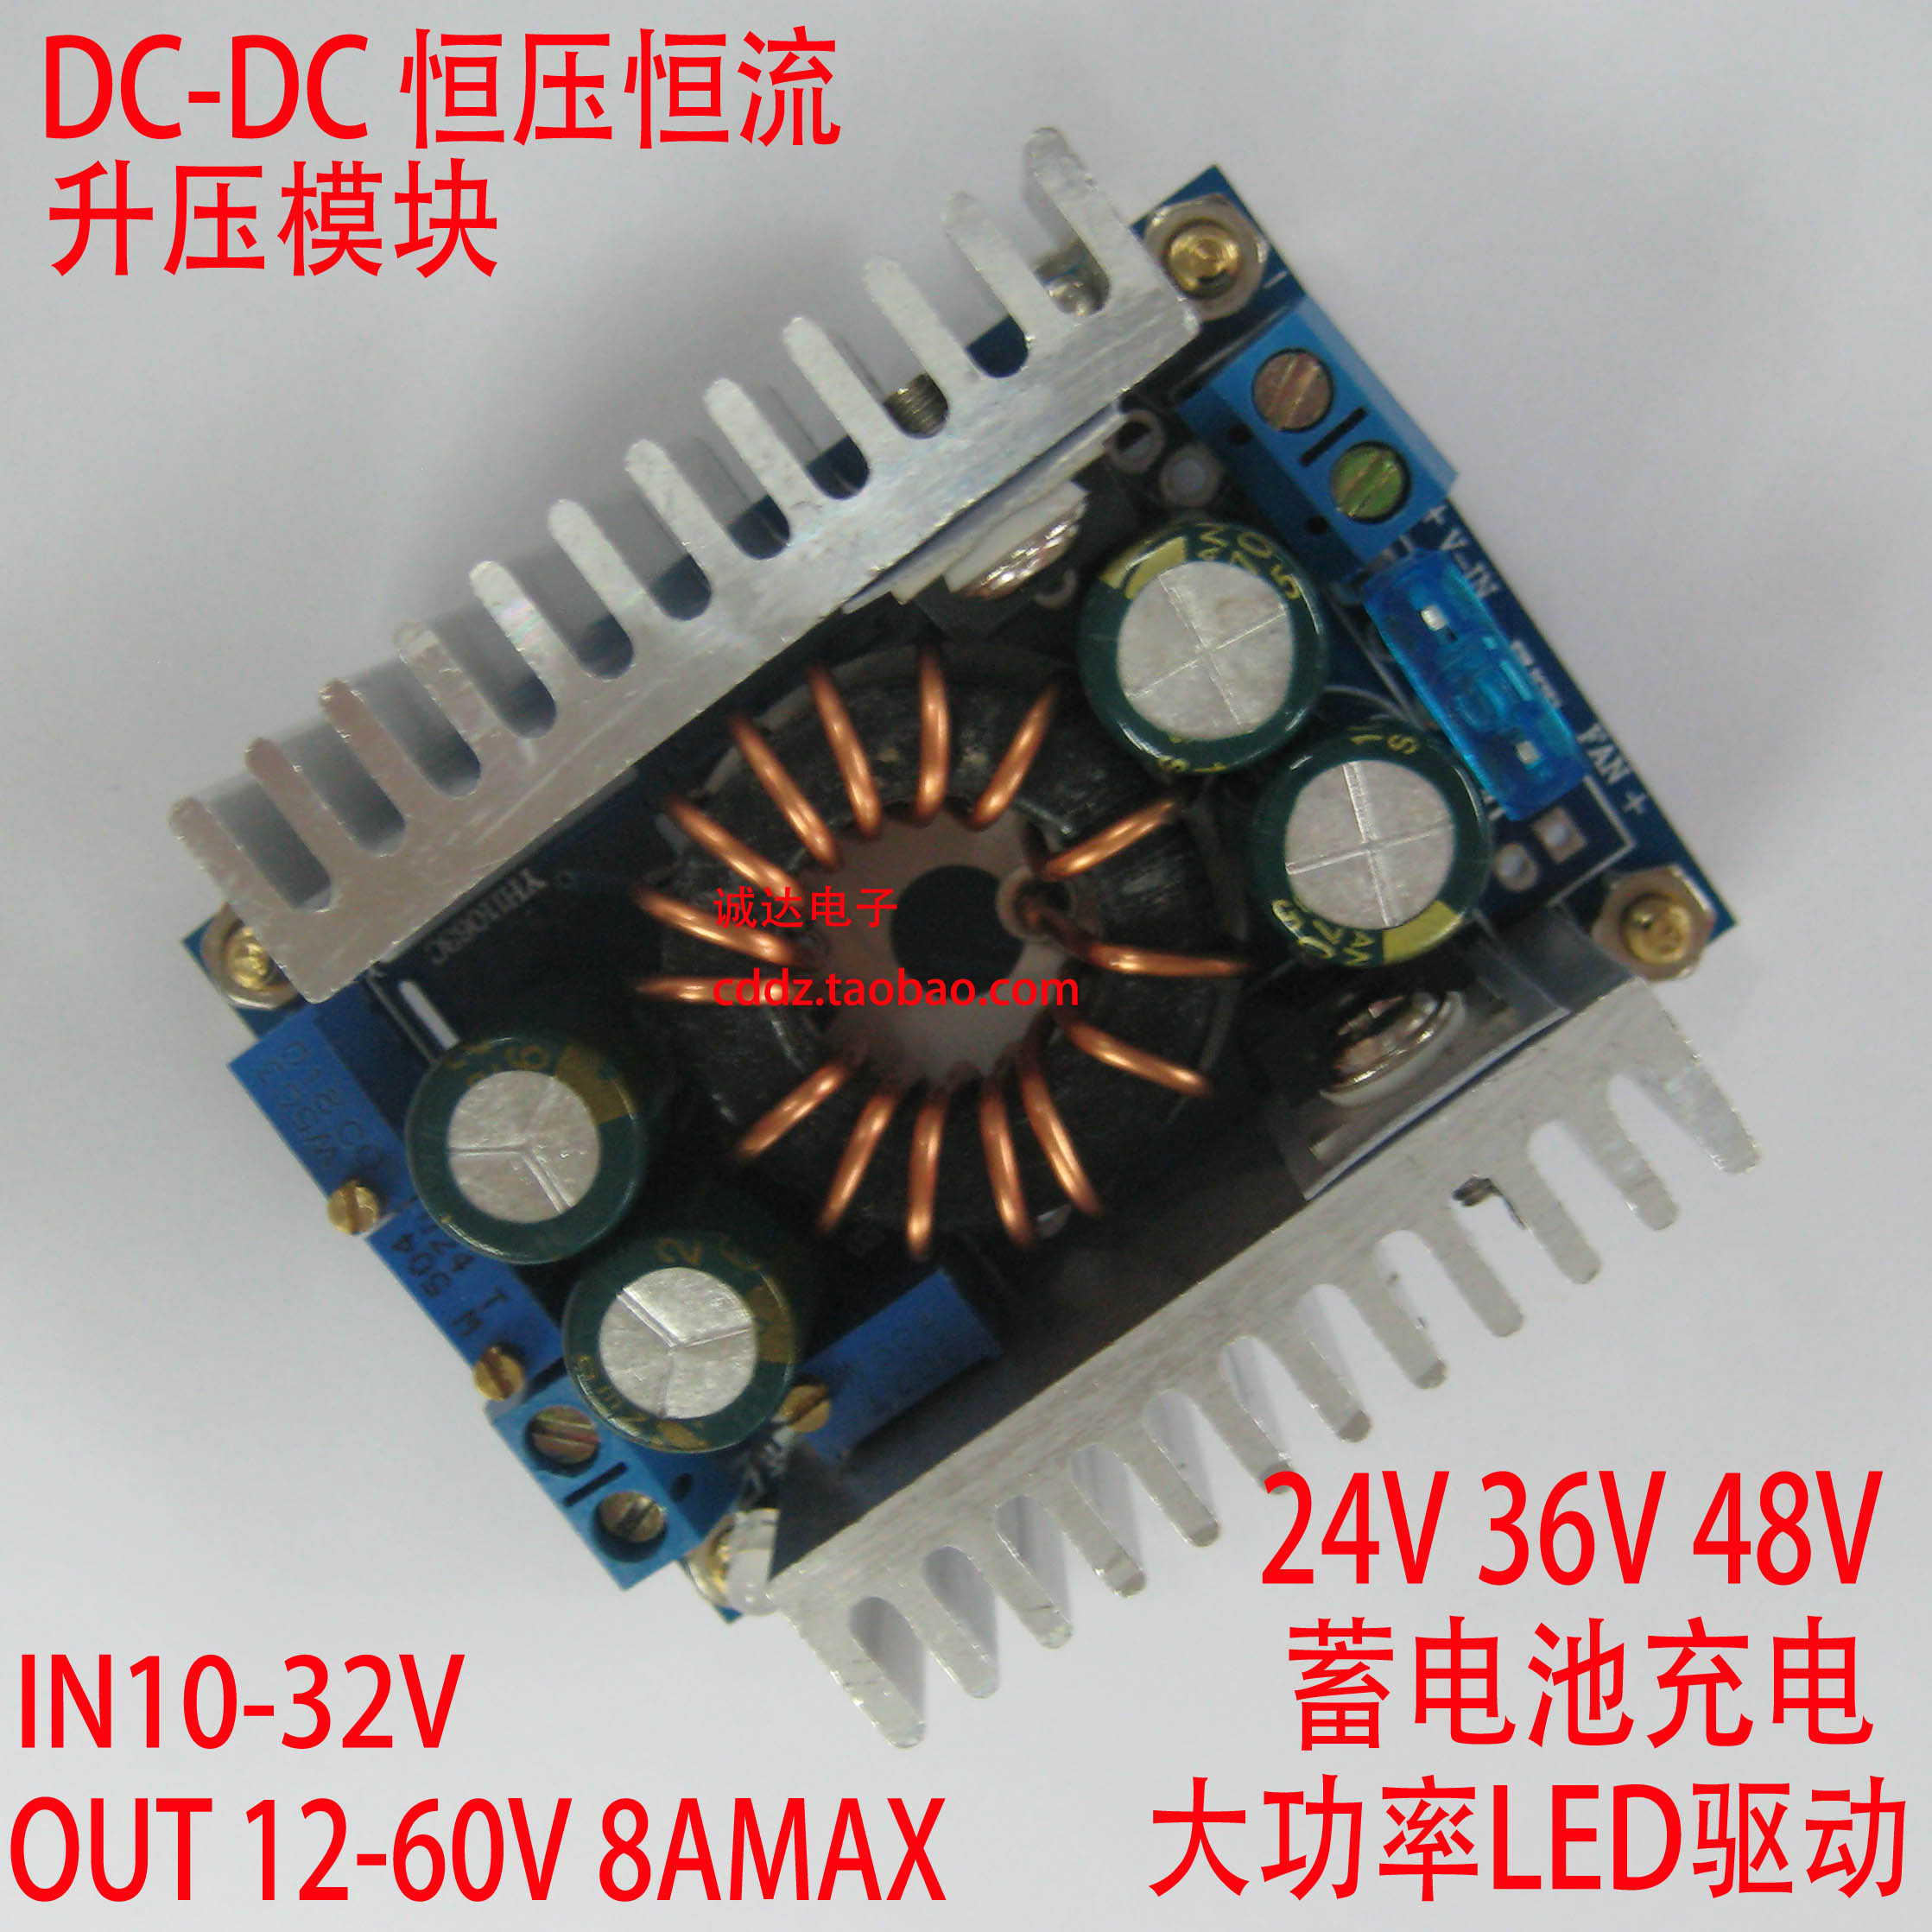 DC-DC adjustable step-up constant current 10-32 converter 12-60V solar voltage regulated LED power supply module waterproof regulator module step up dc 10v 12v 18v to dc 19v 15a 285w for solar power system voltage converter transformer